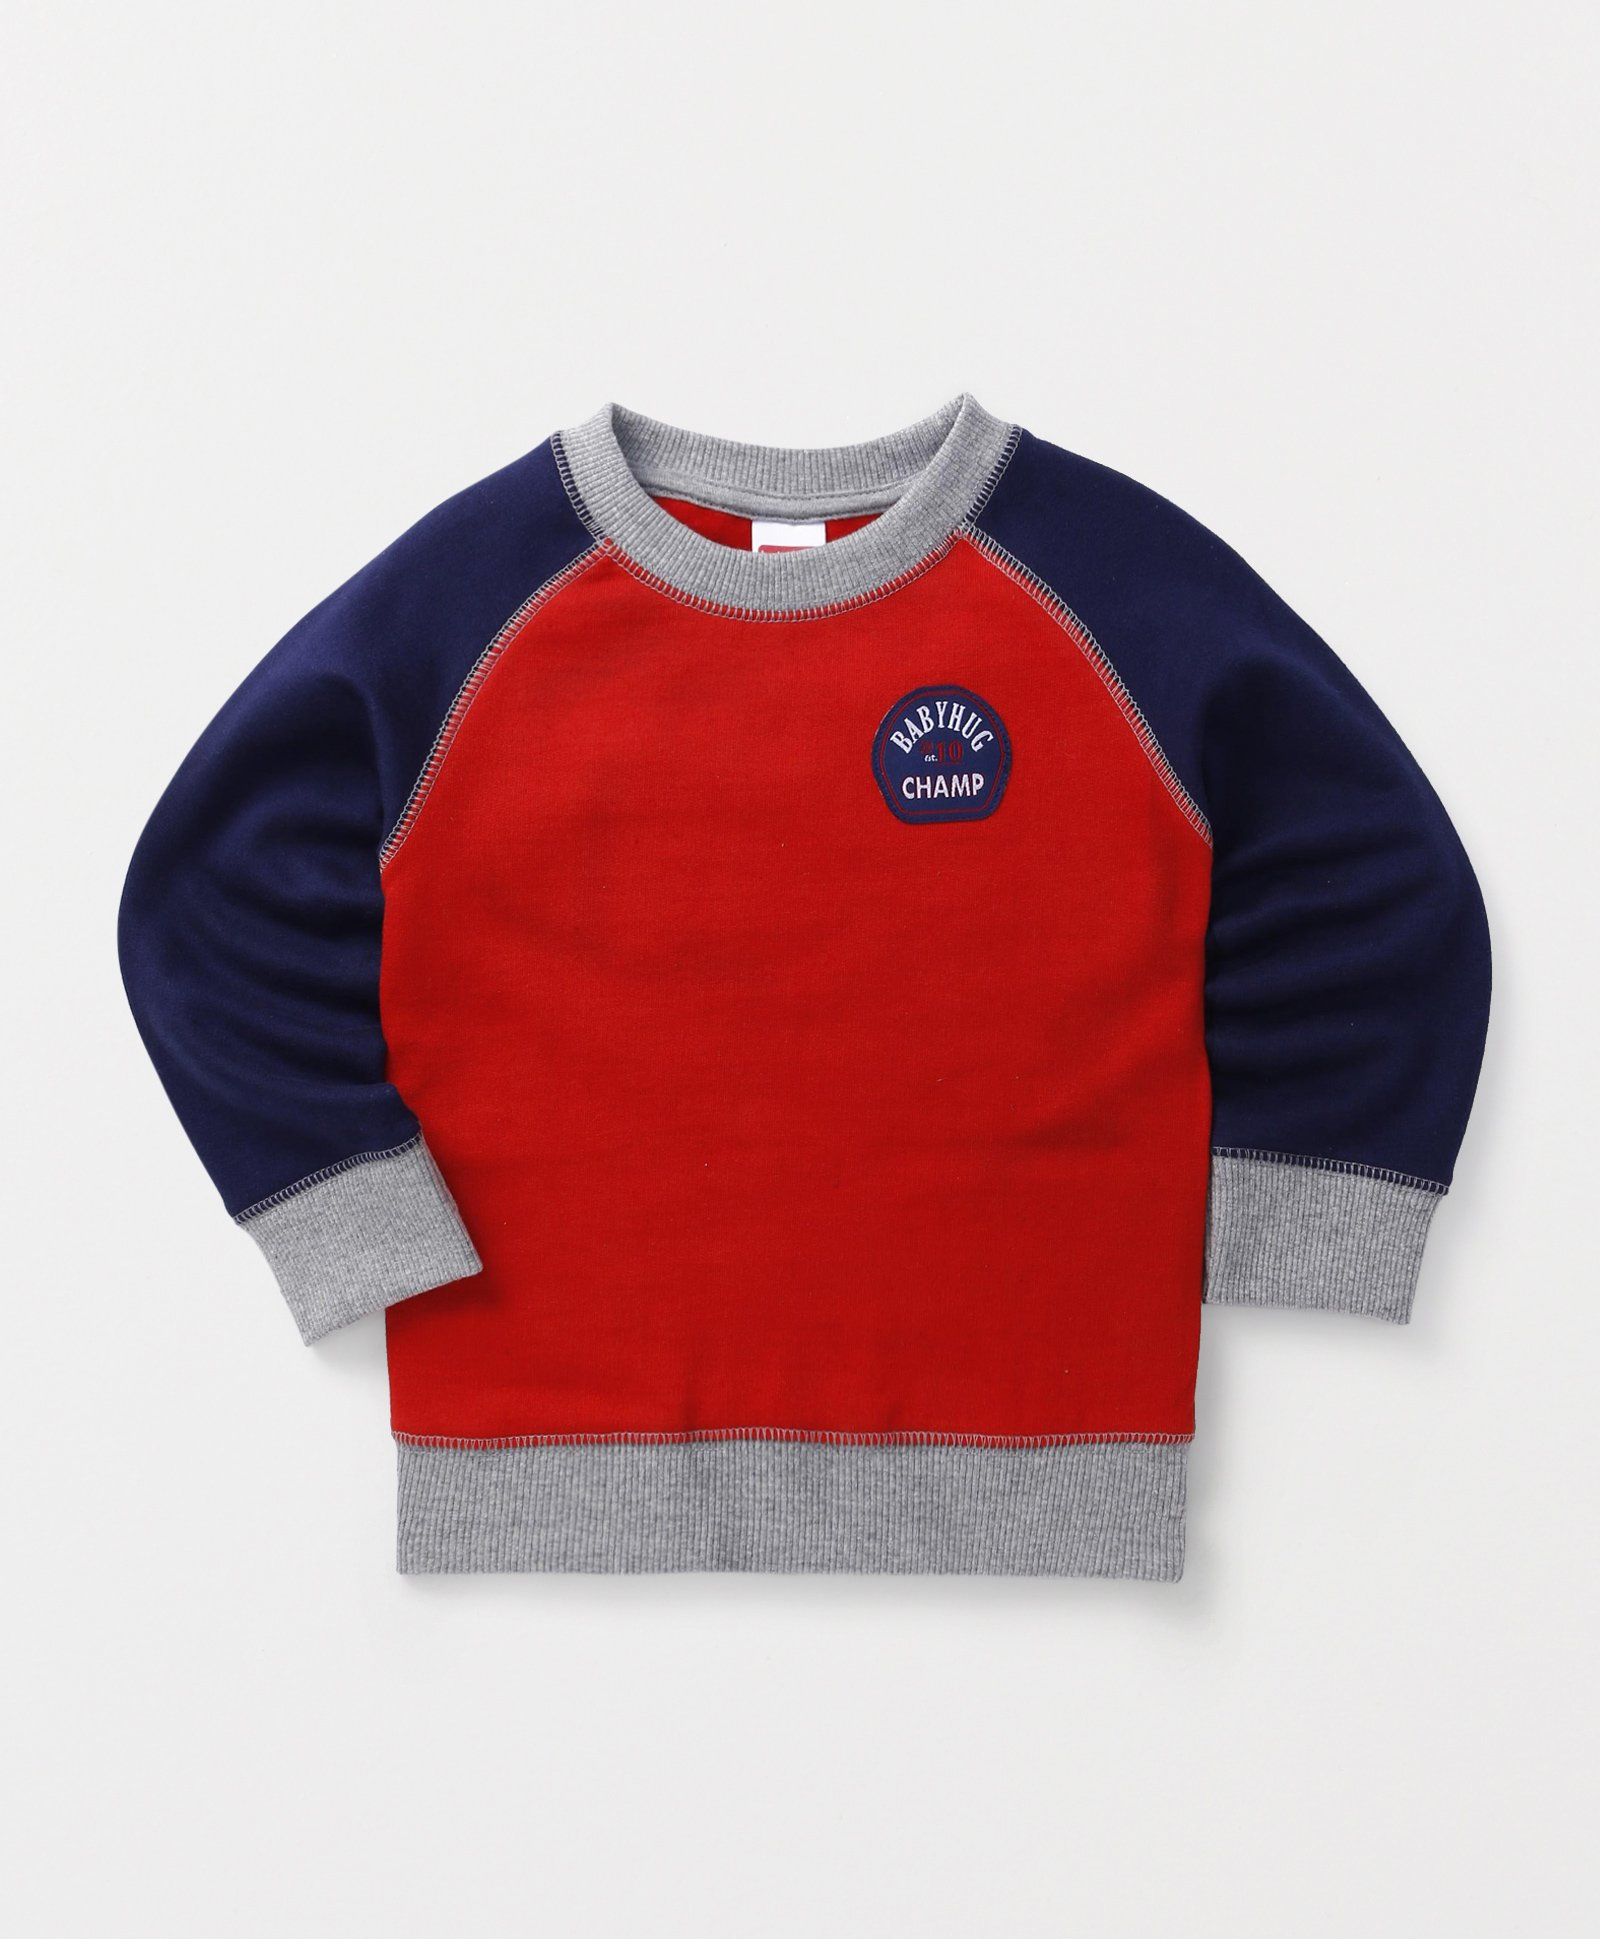 Babyhug Full Sleeves Pullover Sweatshirt - Red Navy & Grey